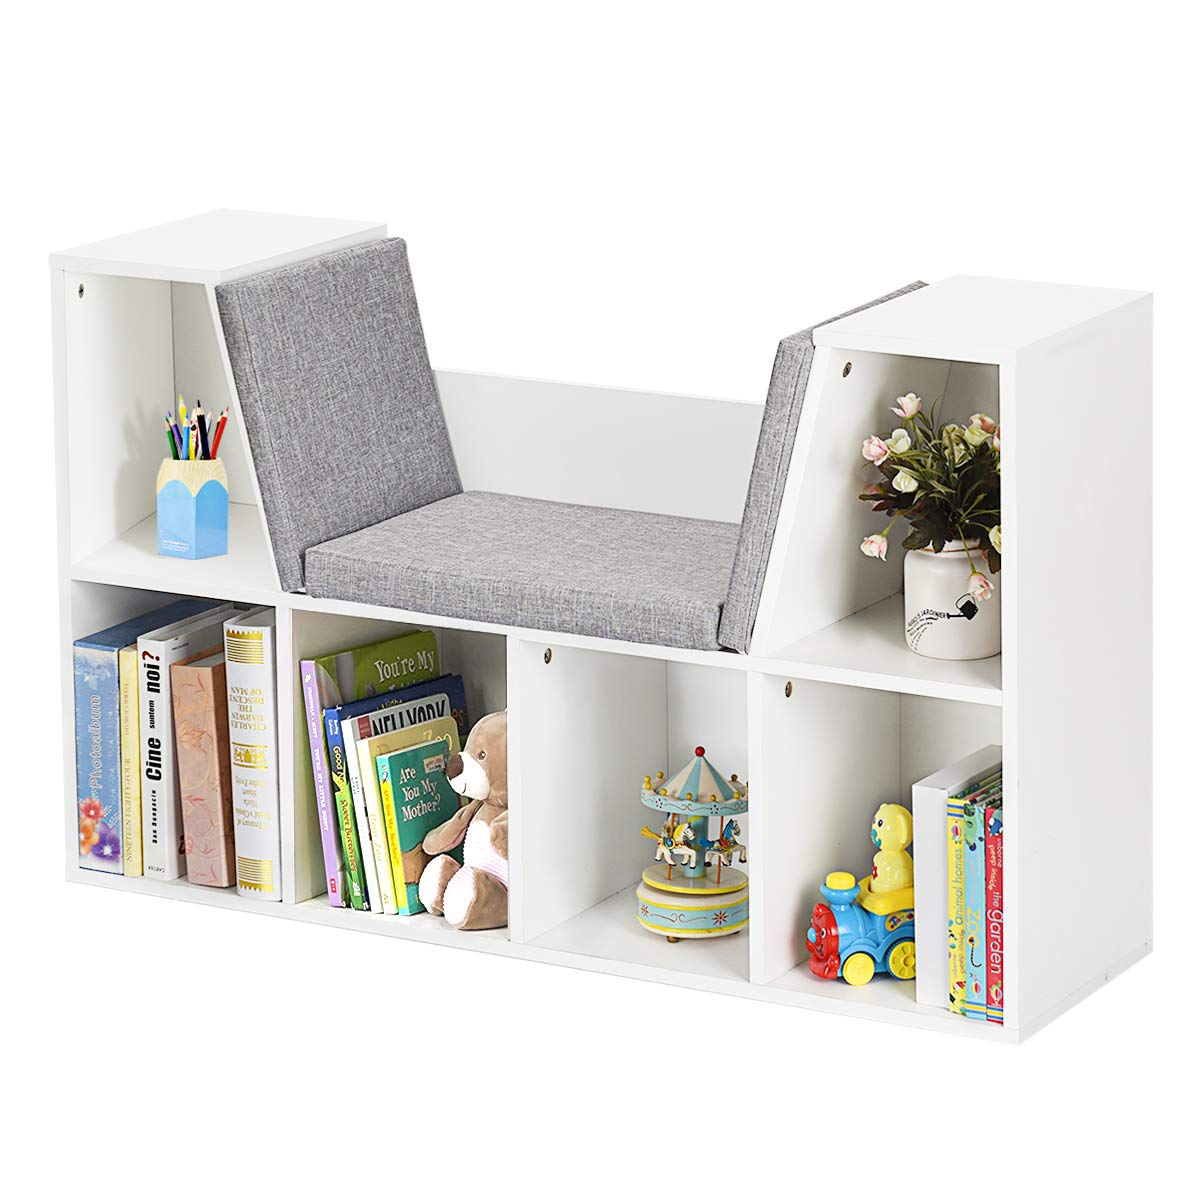 HONEY JOY 6-Cubby Kids Bookcase w/Cushioned Reading Nook, Multi-Purpose Storage Organizer Cabinet Shelf for Children Girls & Boys Bedroom Decor Room, White